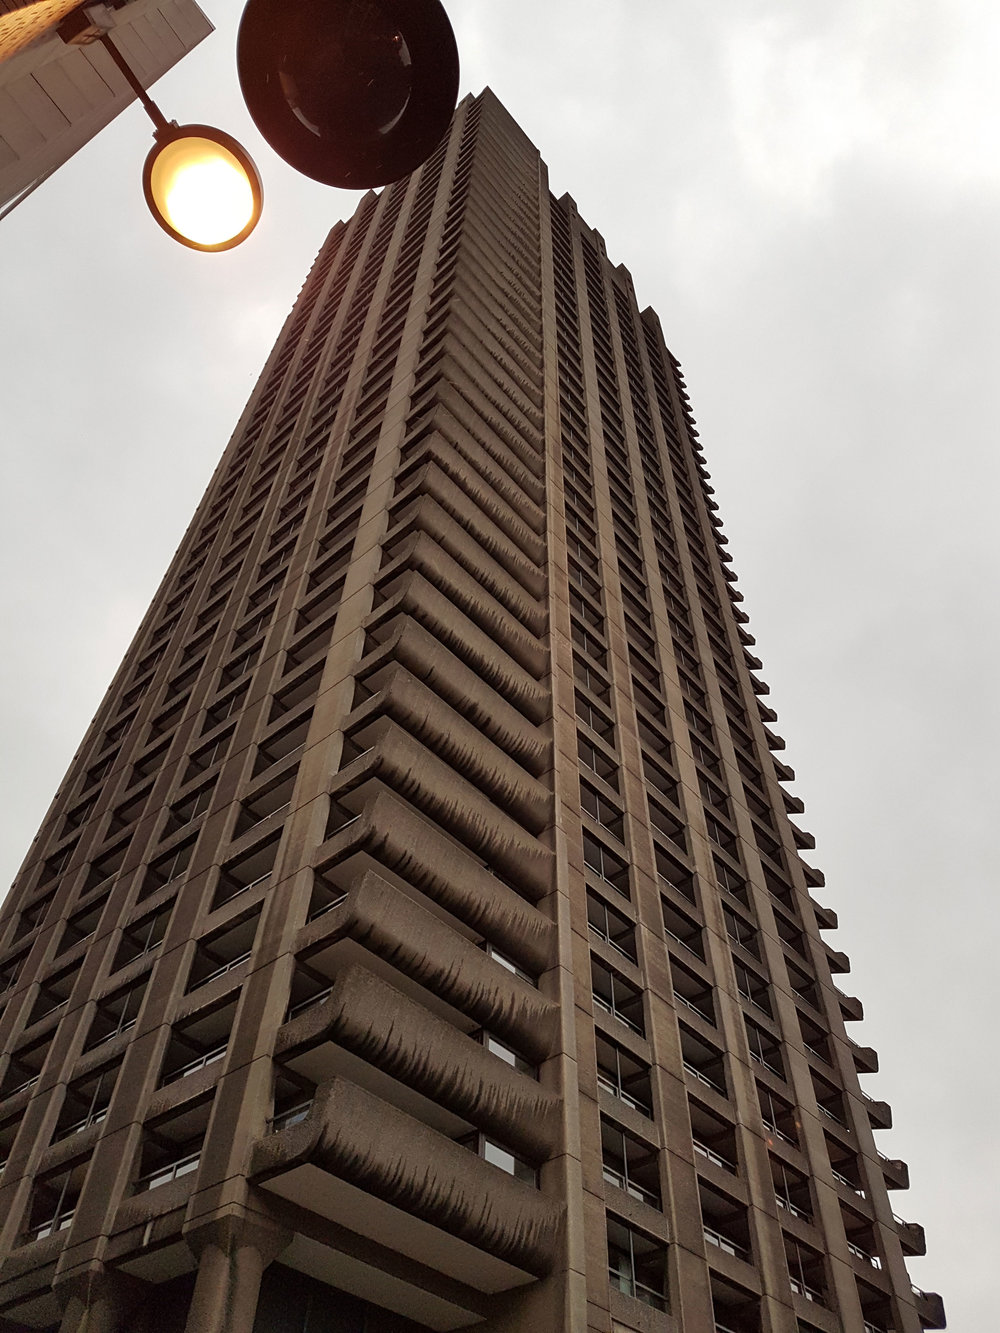 Burns, R. (2017) Shakespear Tower, Barbican Estate. (Own collection)